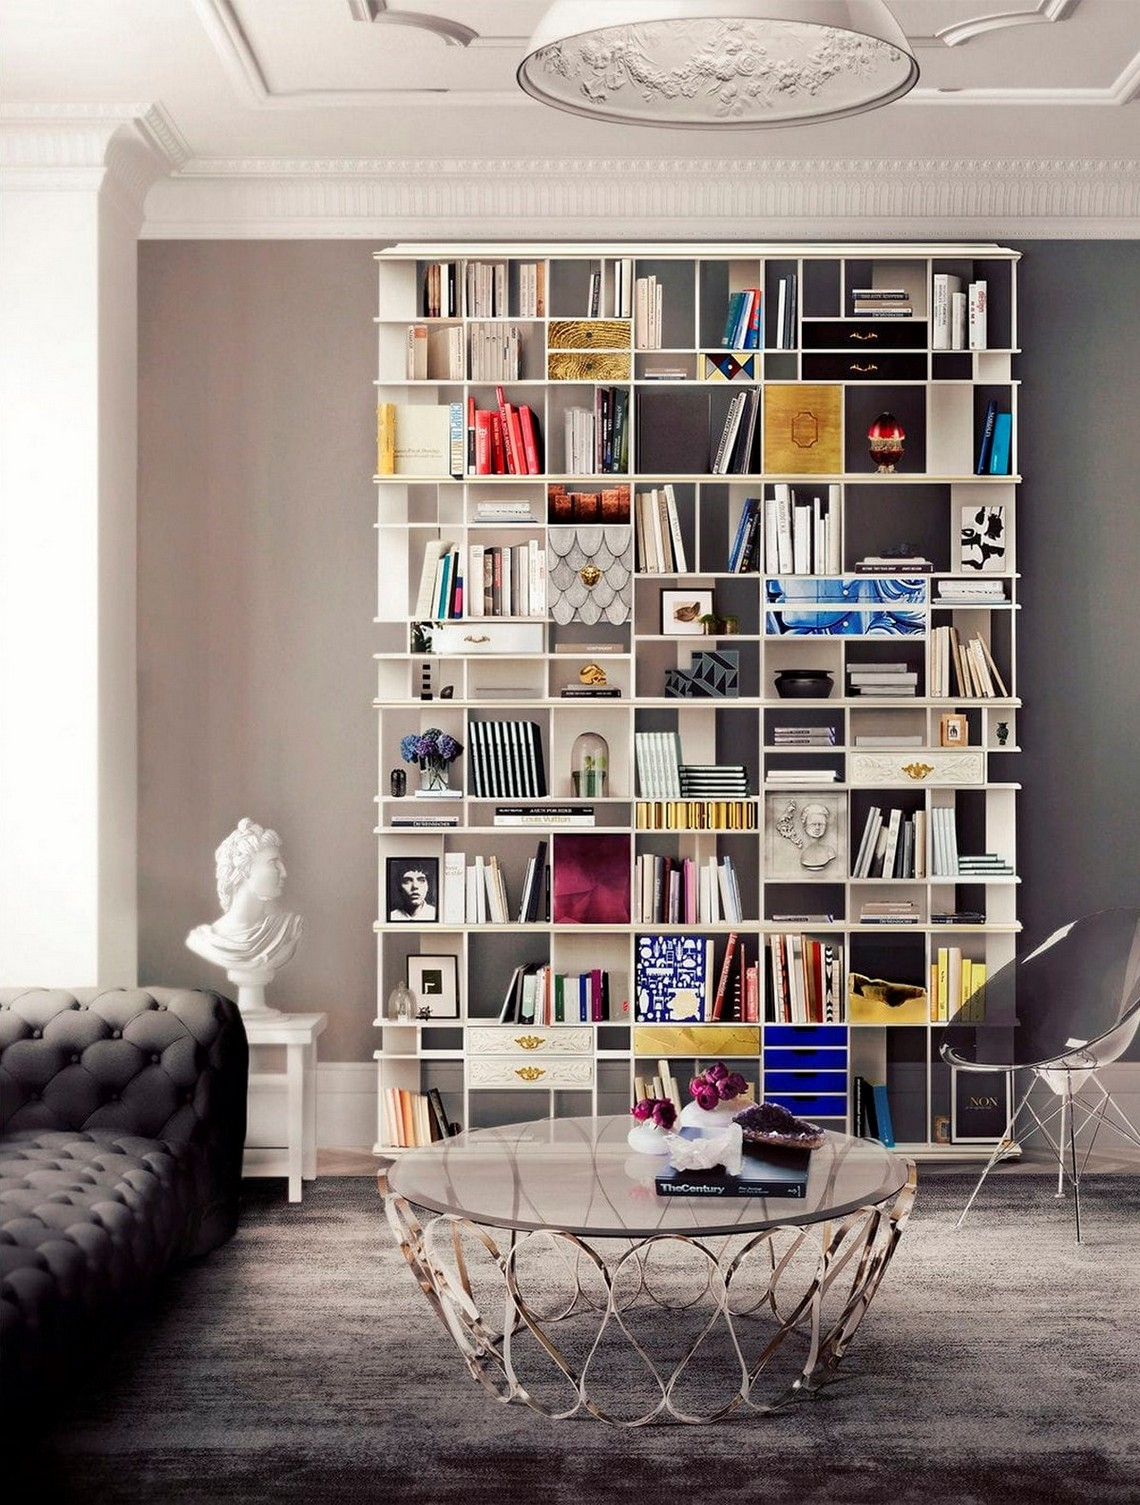 Amazing Contemporary Bookcases For Modern Ambiances contemporary bookcases Amazing Contemporary Bookcases For Modern Ambiances colecionista